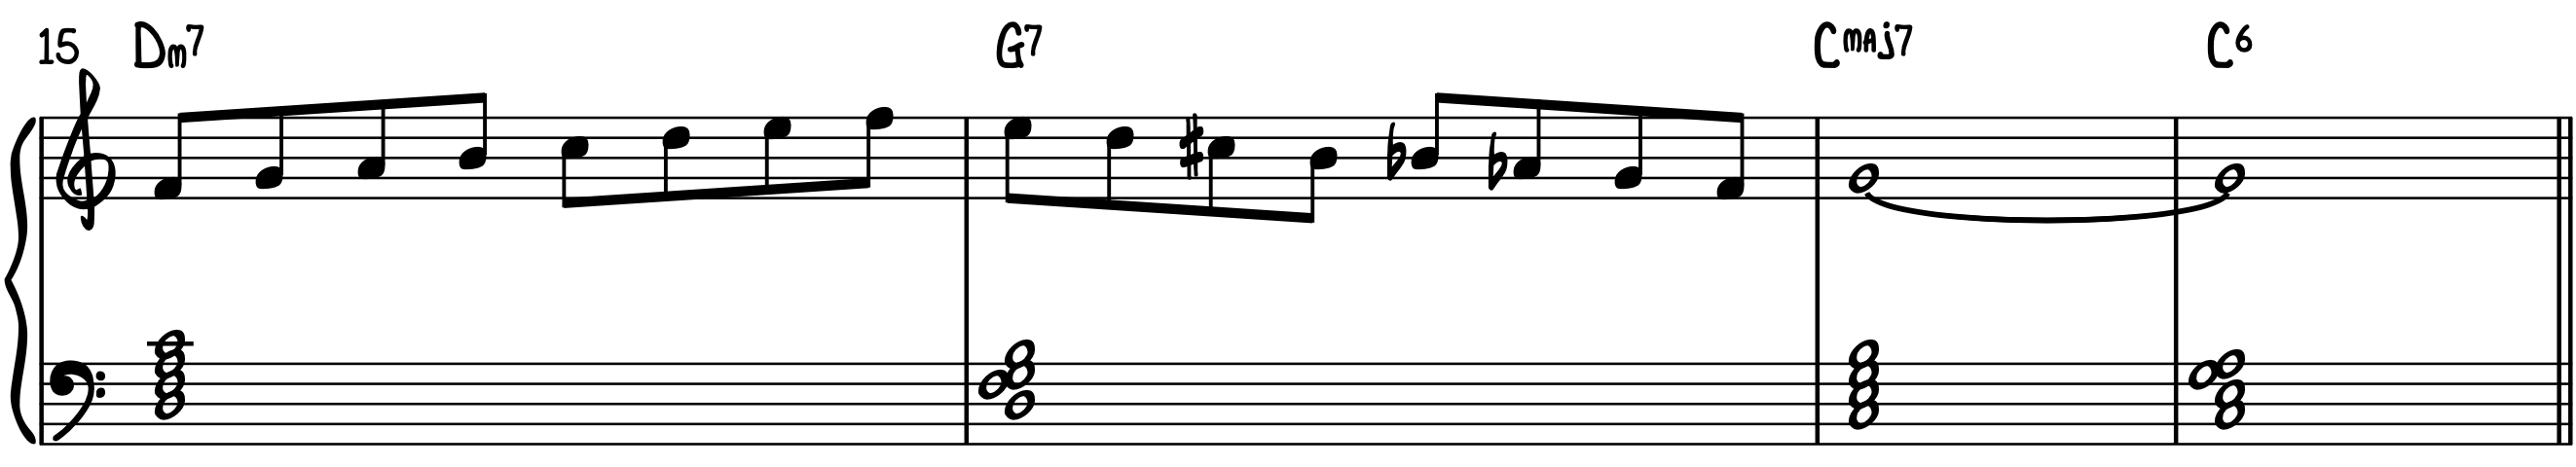 Connecting Scale Exercise 2 Jazz Piano Improv Intermediate Advanced